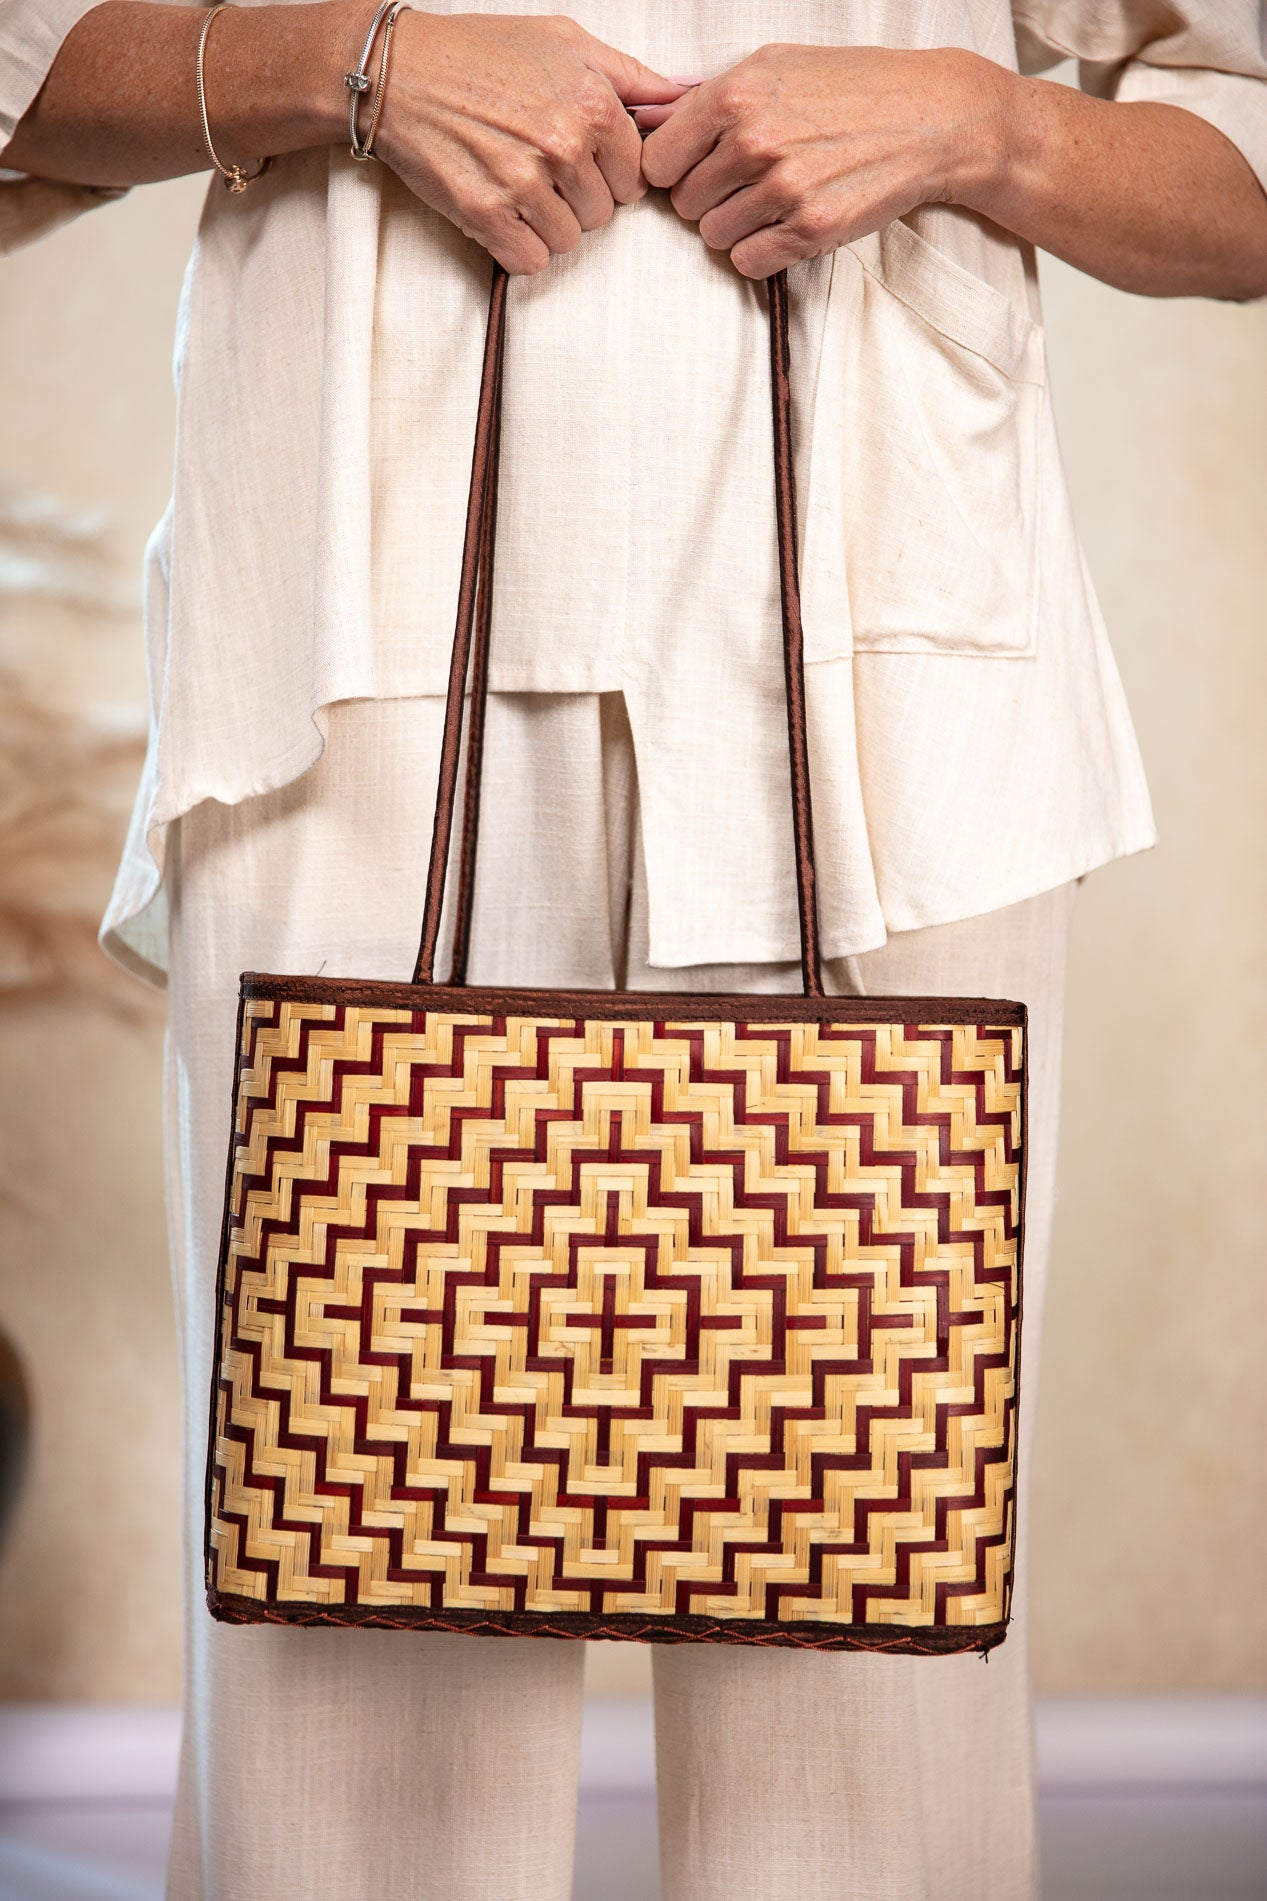 Bamboo Bag Thatched Copper and Natural Colour Hand-Made Light Weight